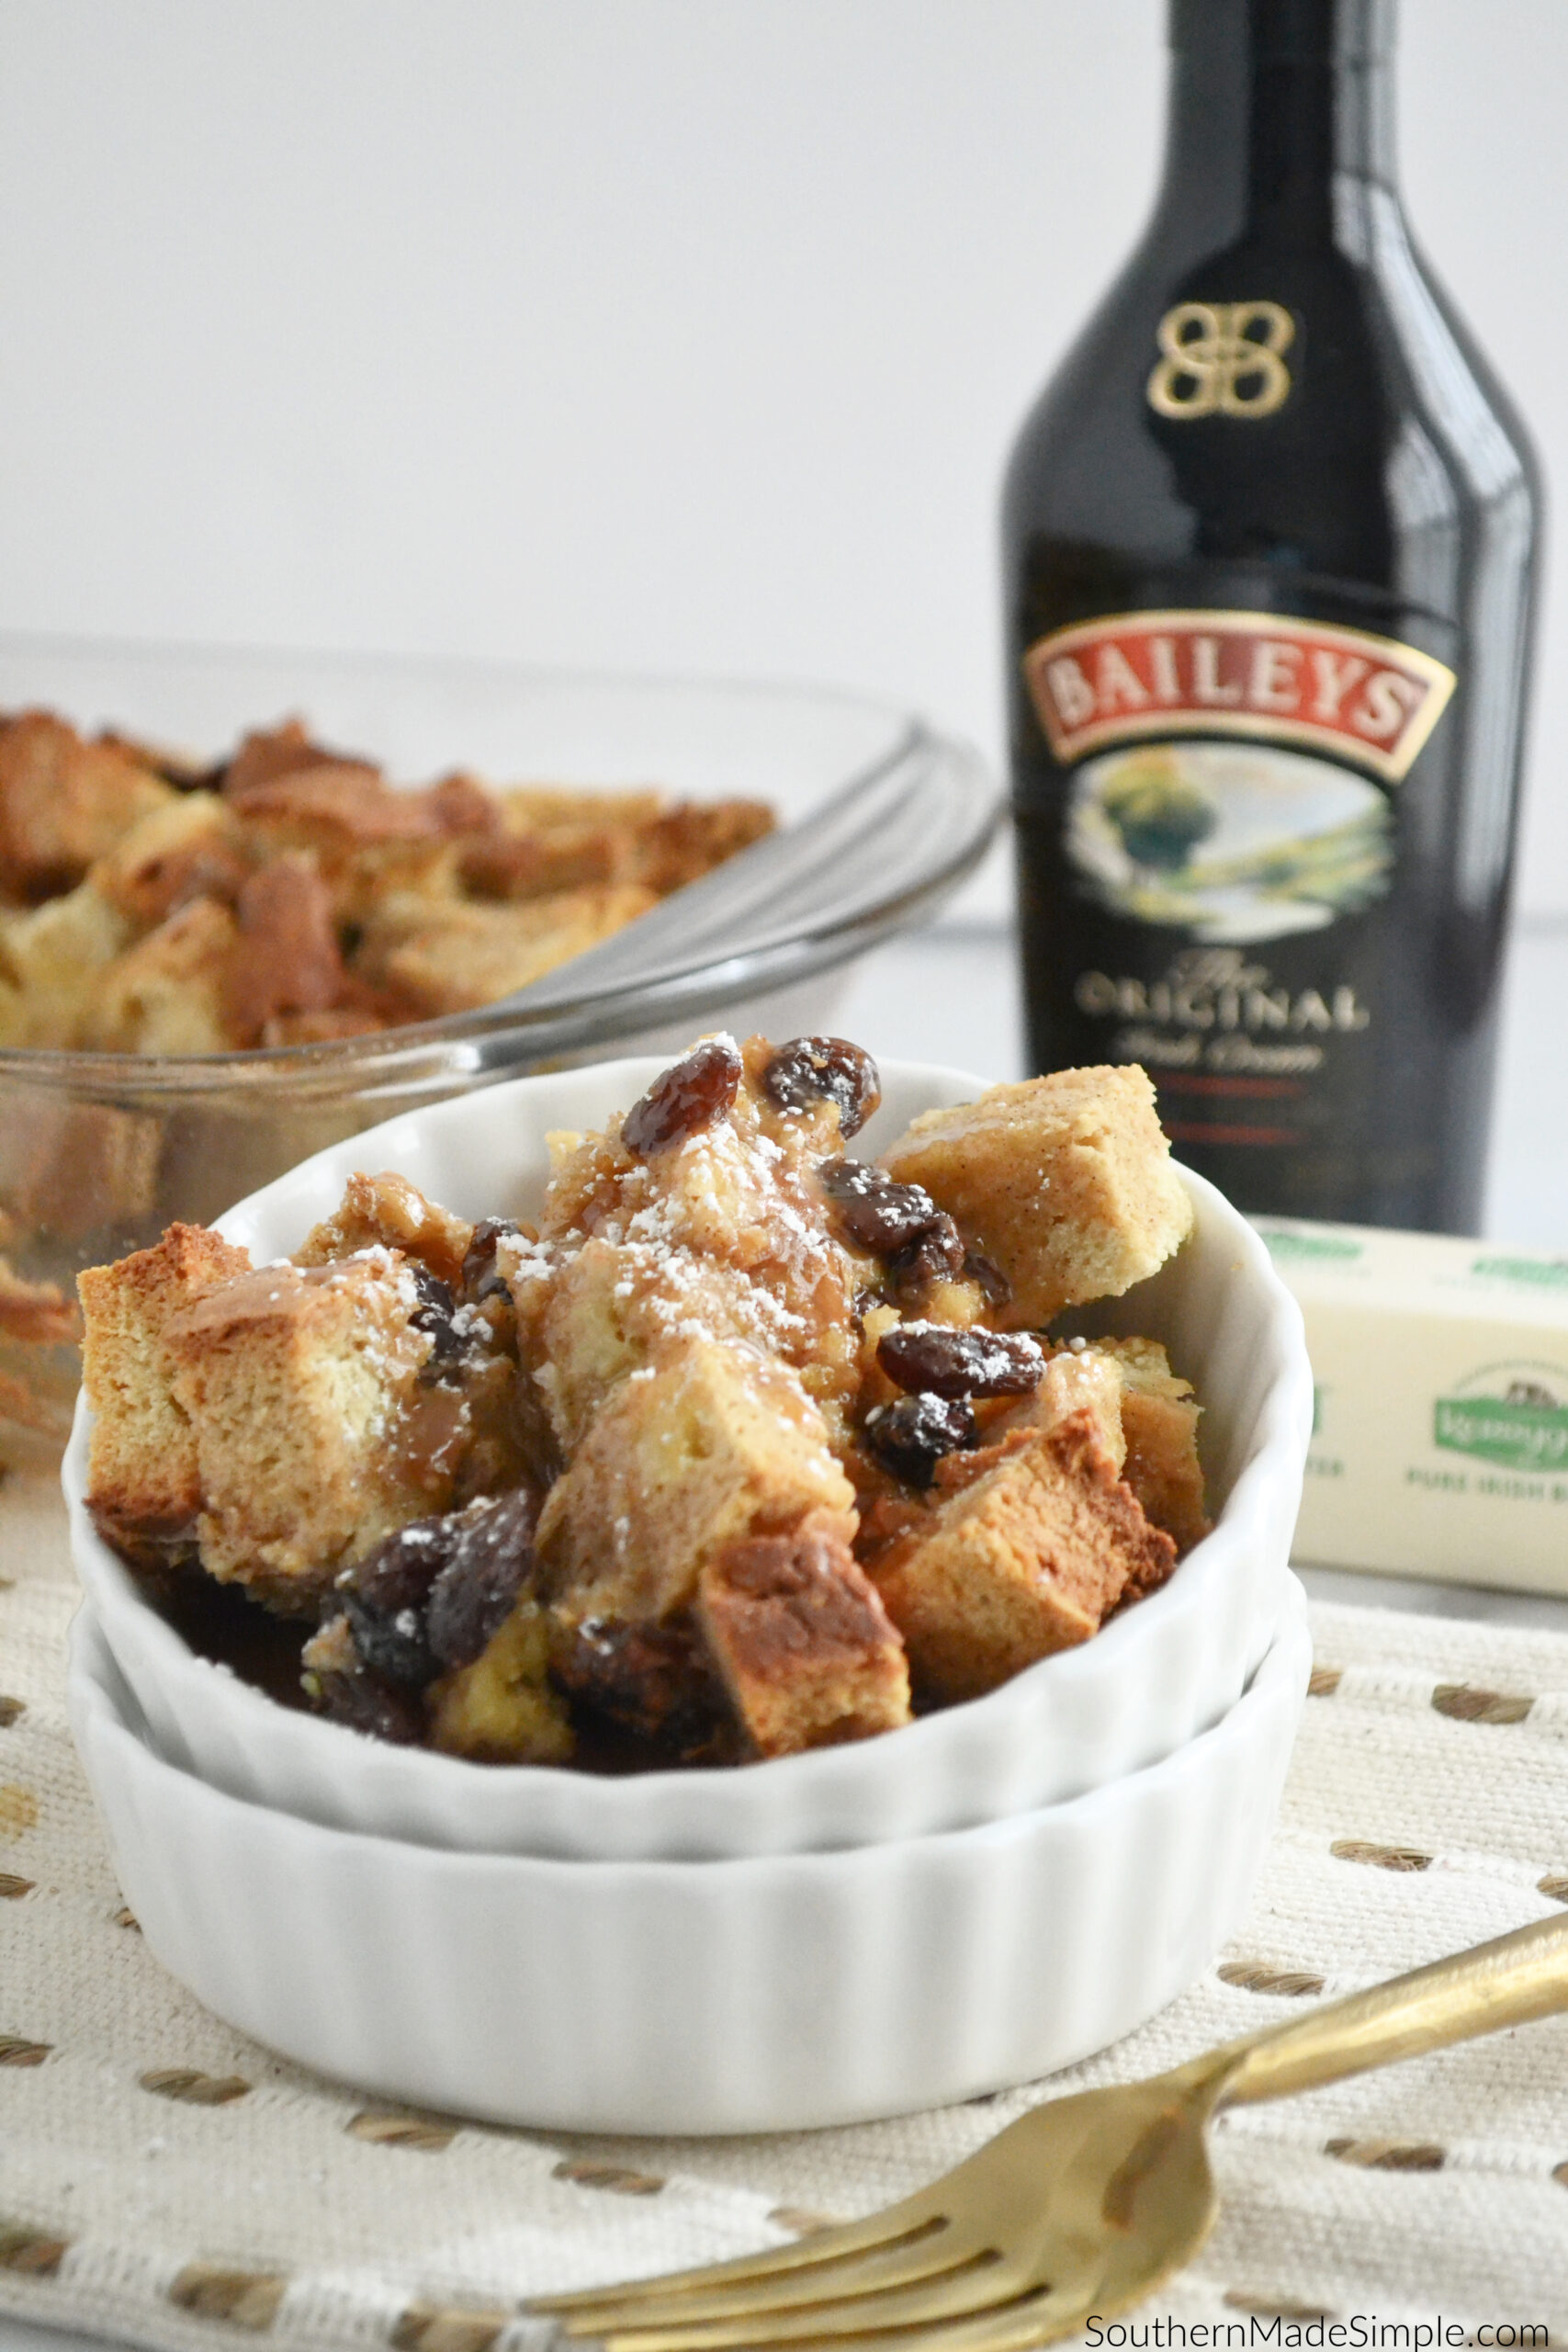 Irish Soda Bread Pudding with Bailey's Caramel Cream Sauce